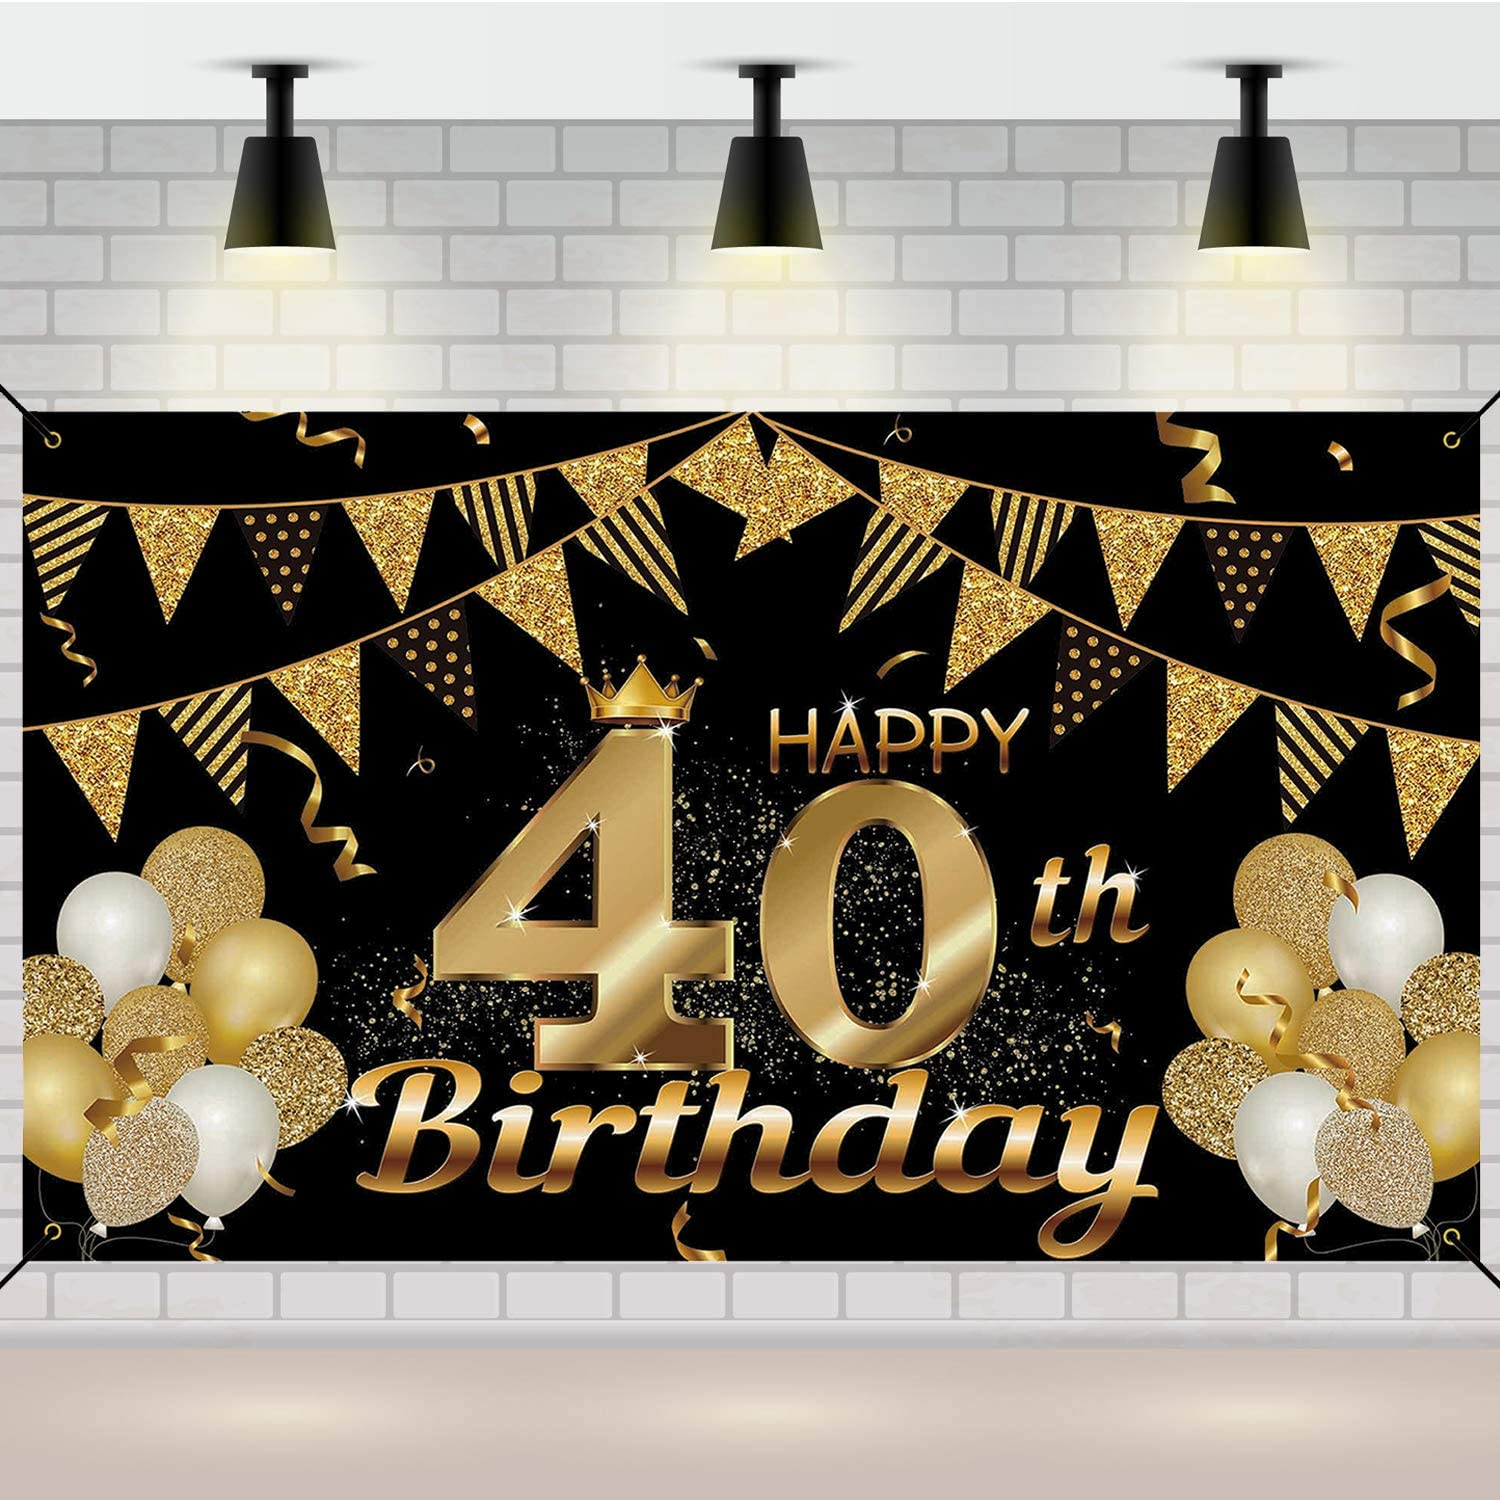 40th Birthday Banners 70.8'' Gorgeous x 43.3'' and Large Black New mail order Gold Ba